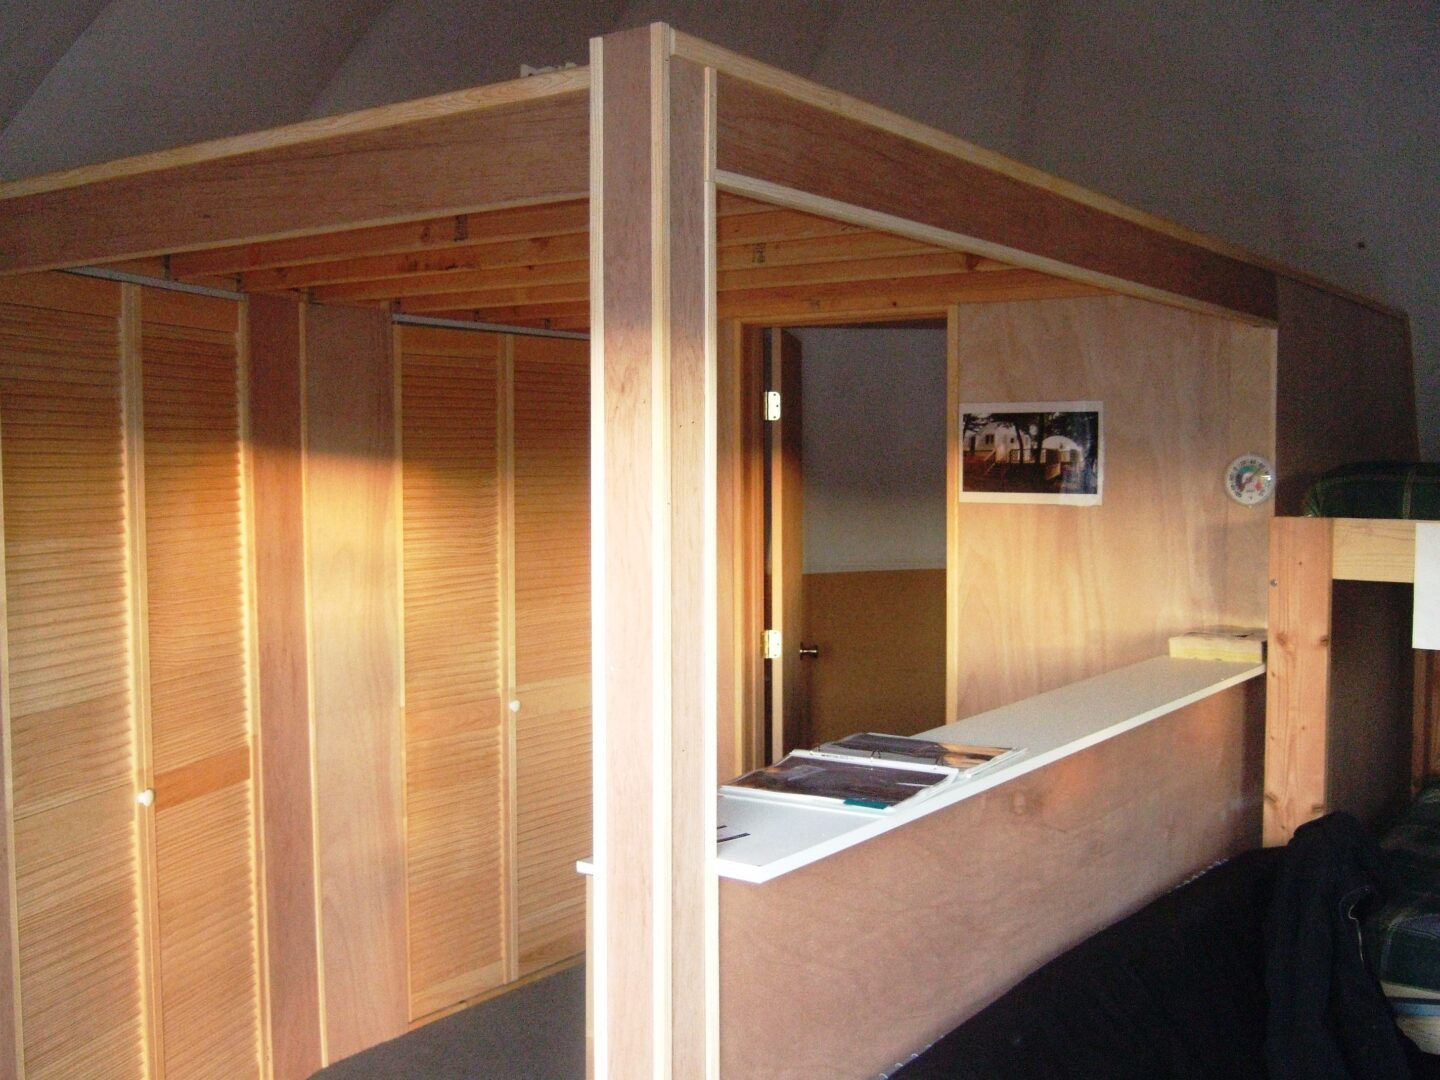 Tiny house with wooden rooms and partitions from InterShelter Inc.